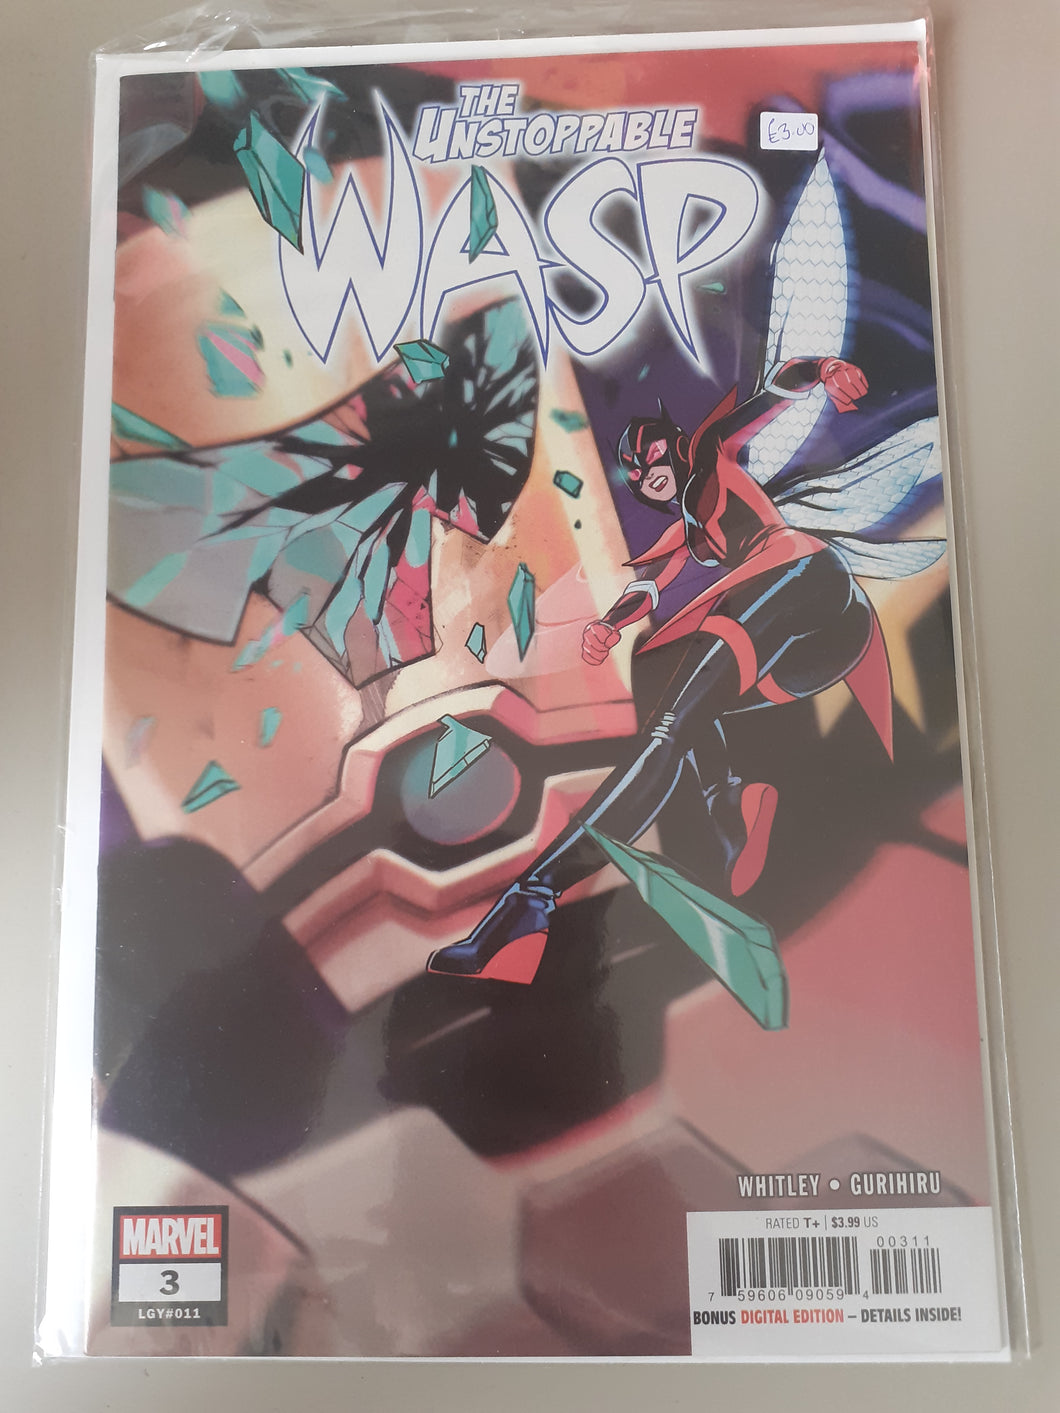 The Unstoppable Wasp #3 (Legacy #11)